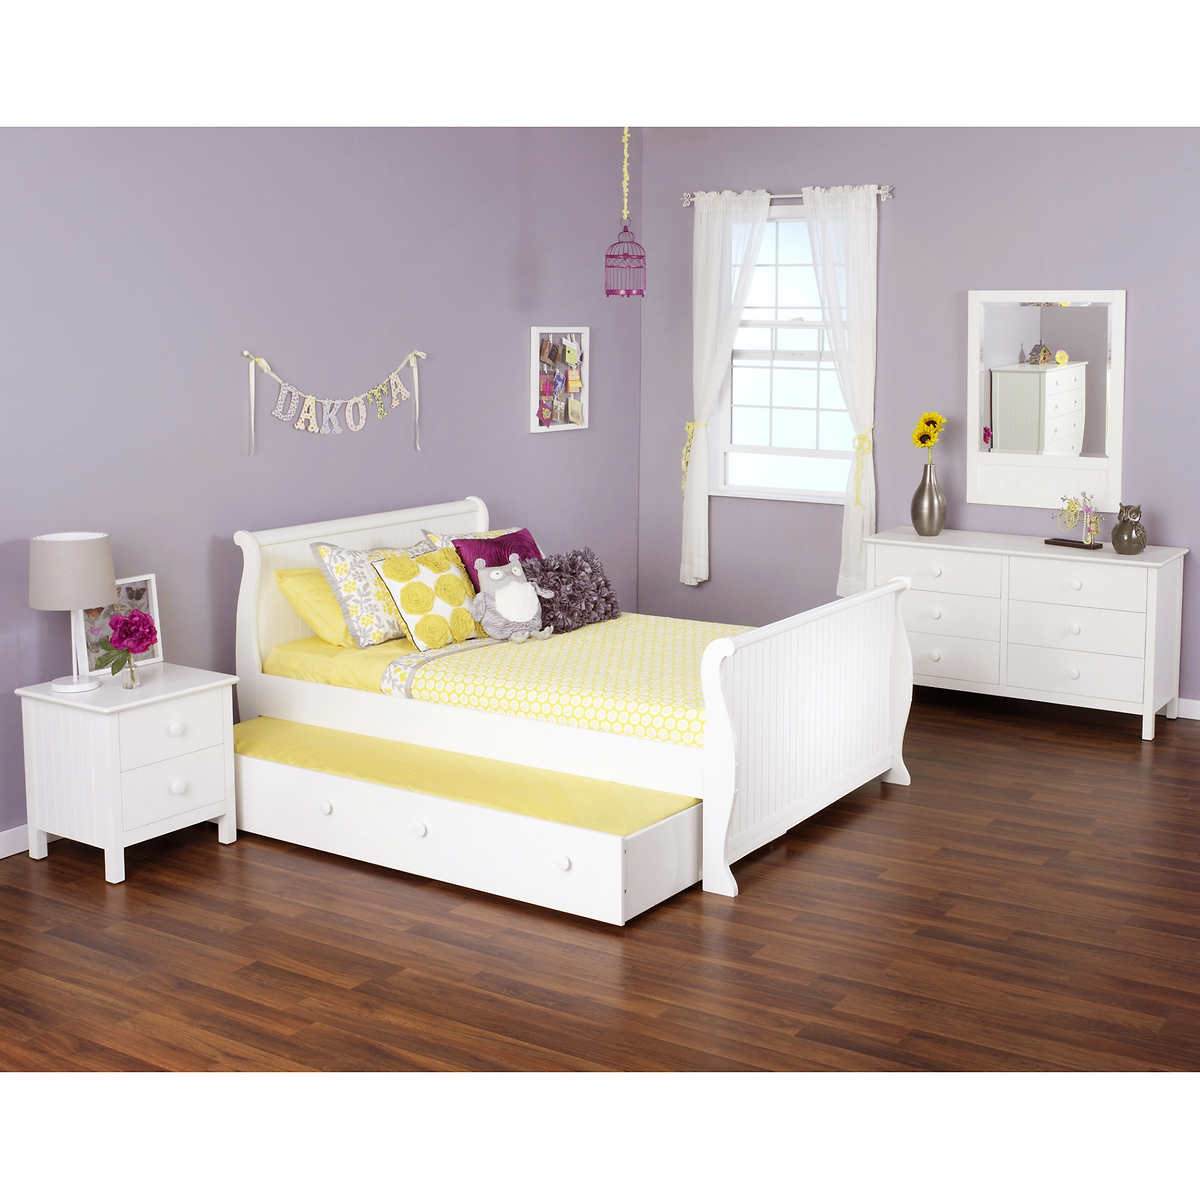 White bedroom sets - Olivia 4 Piece Full Sleigh Bed With Trundle Bed Set